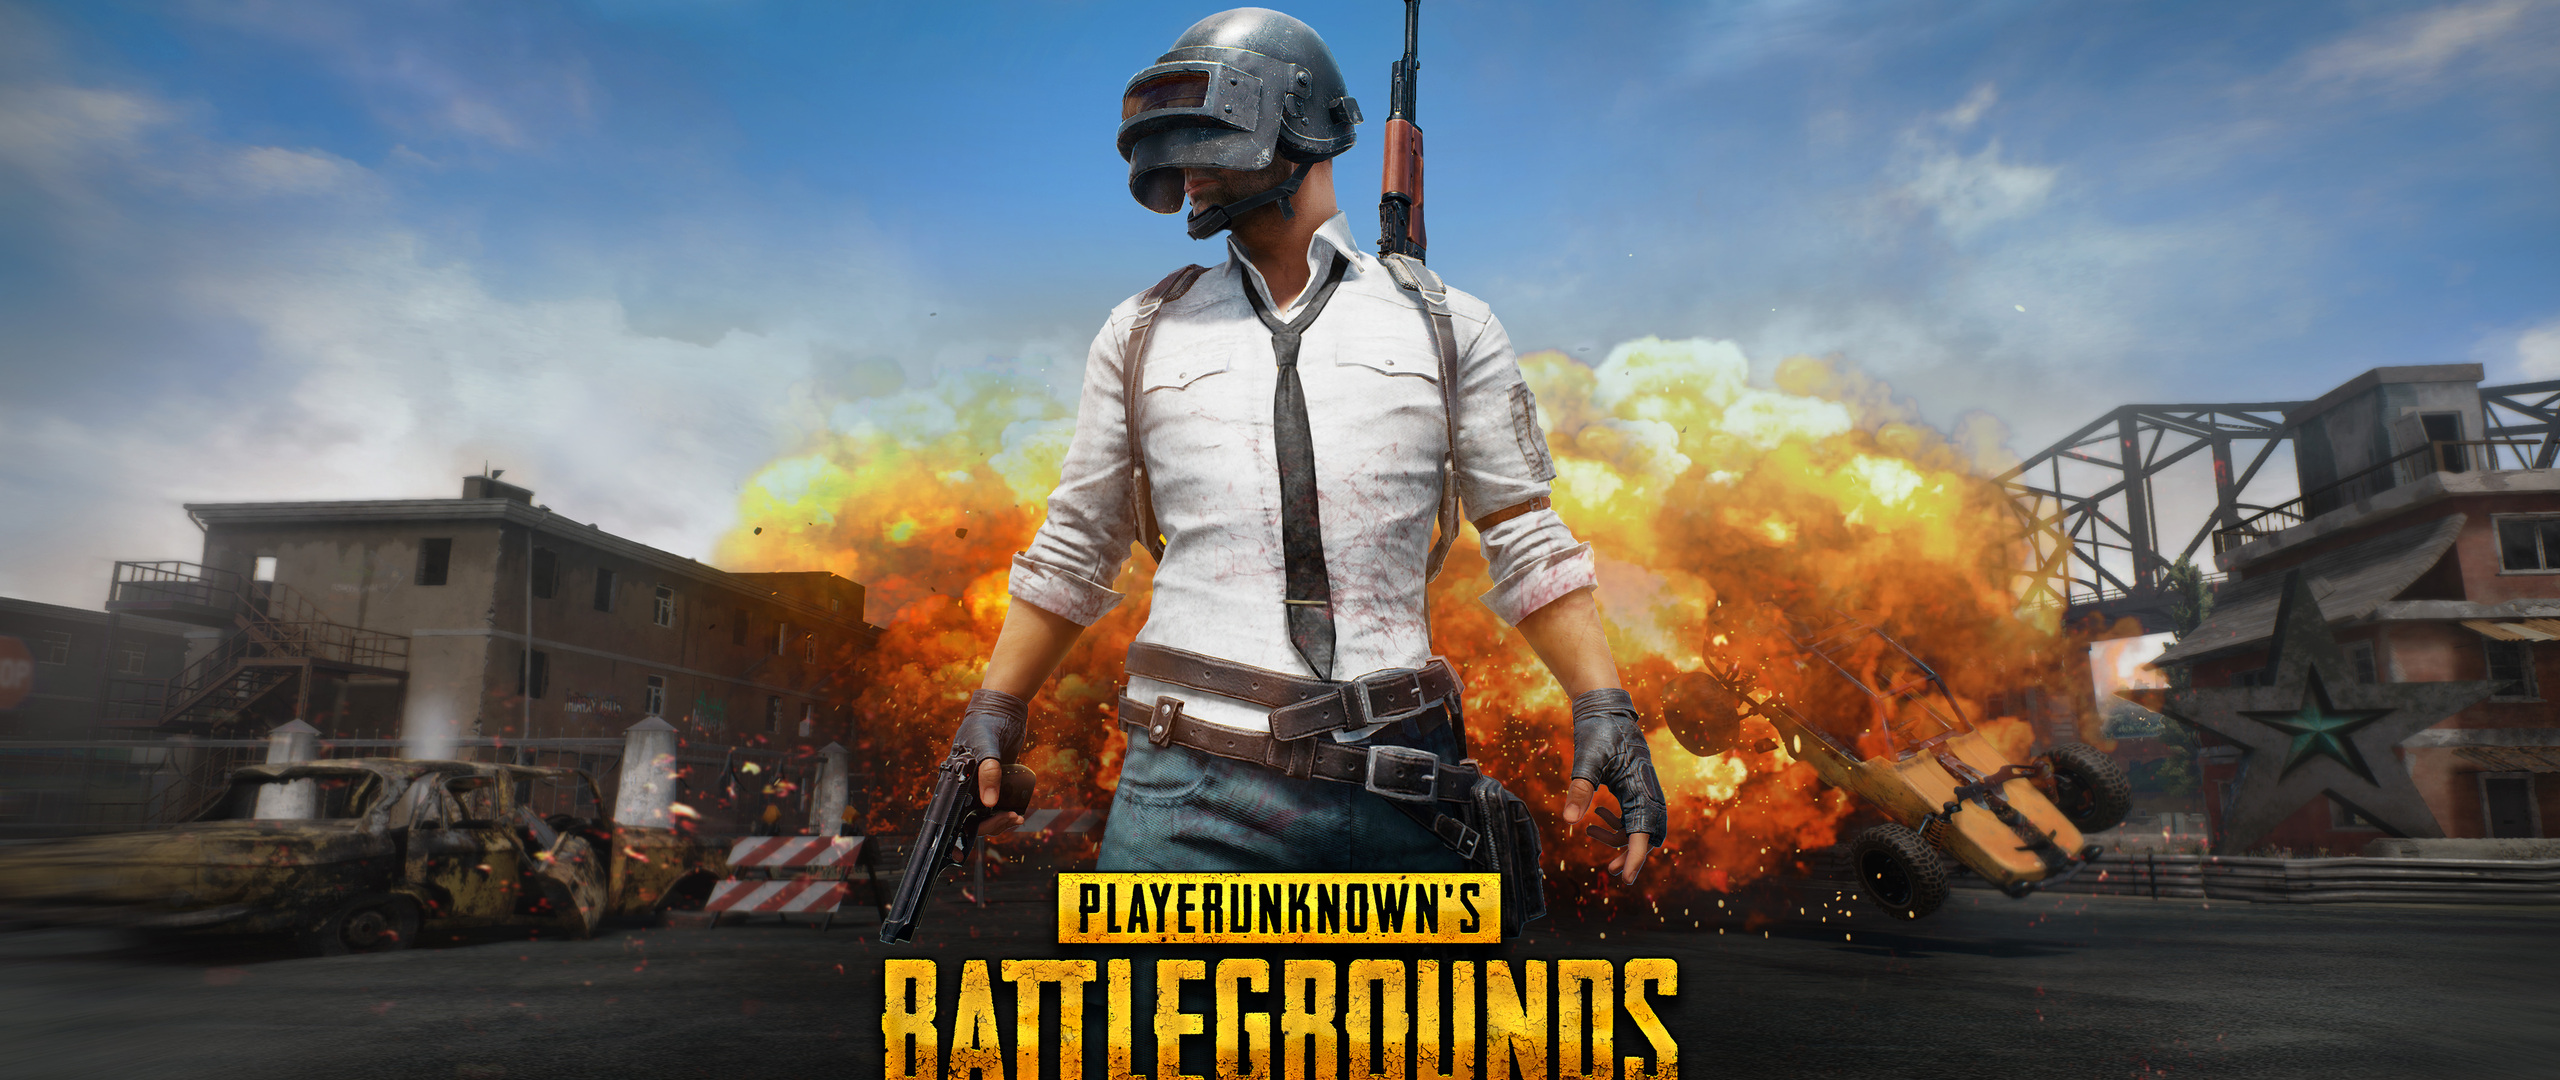 2560x1080 PlayerUnknowns Battlegrounds 4k 5k 2560x1080